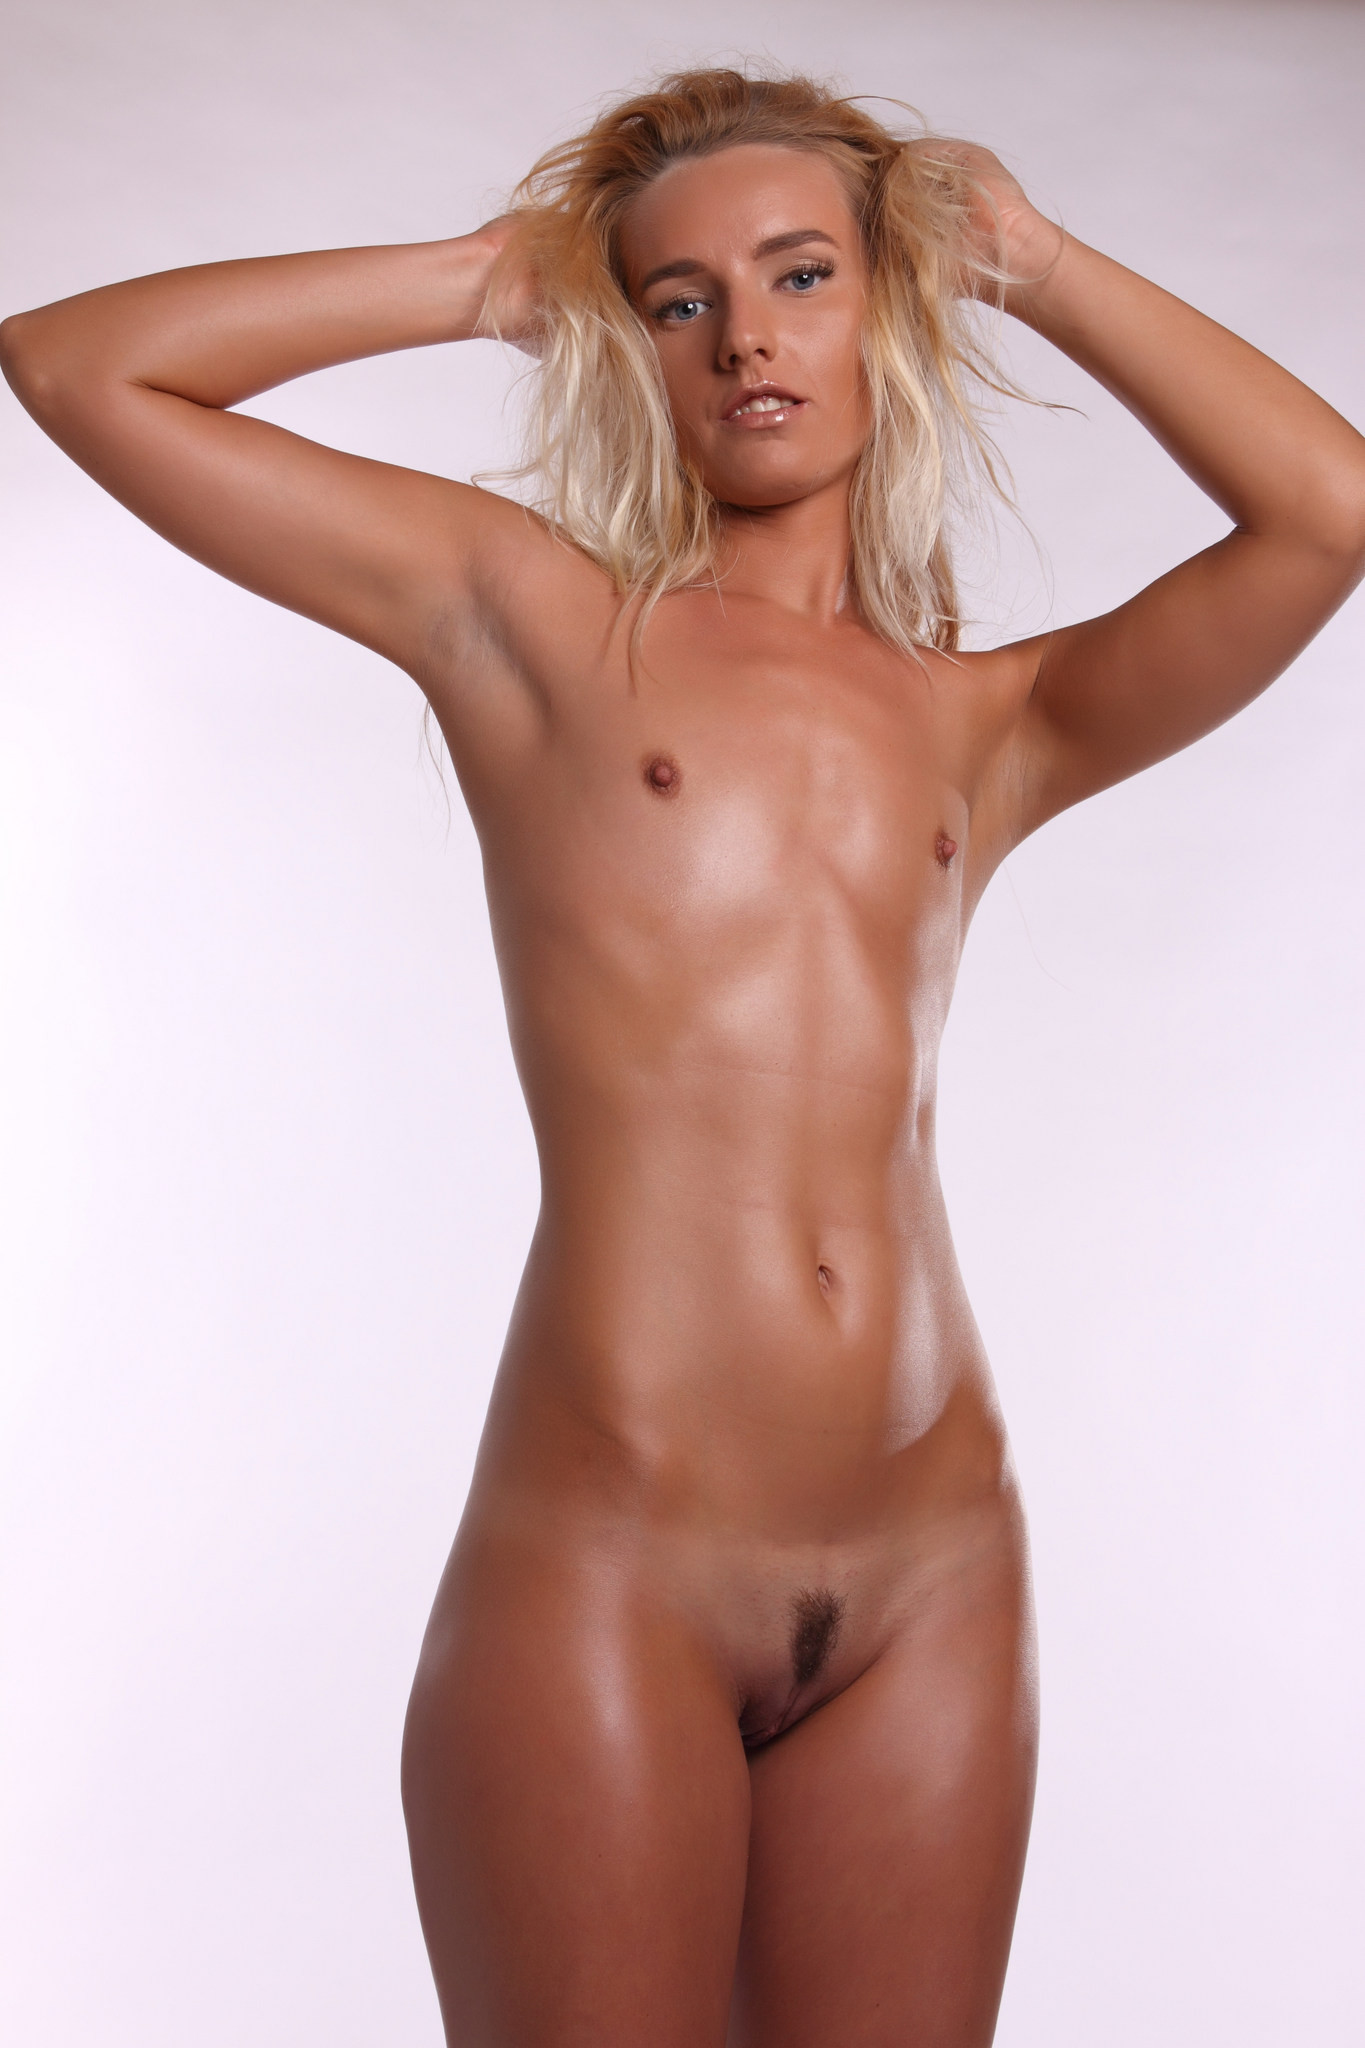 Nude titless flat chested girl